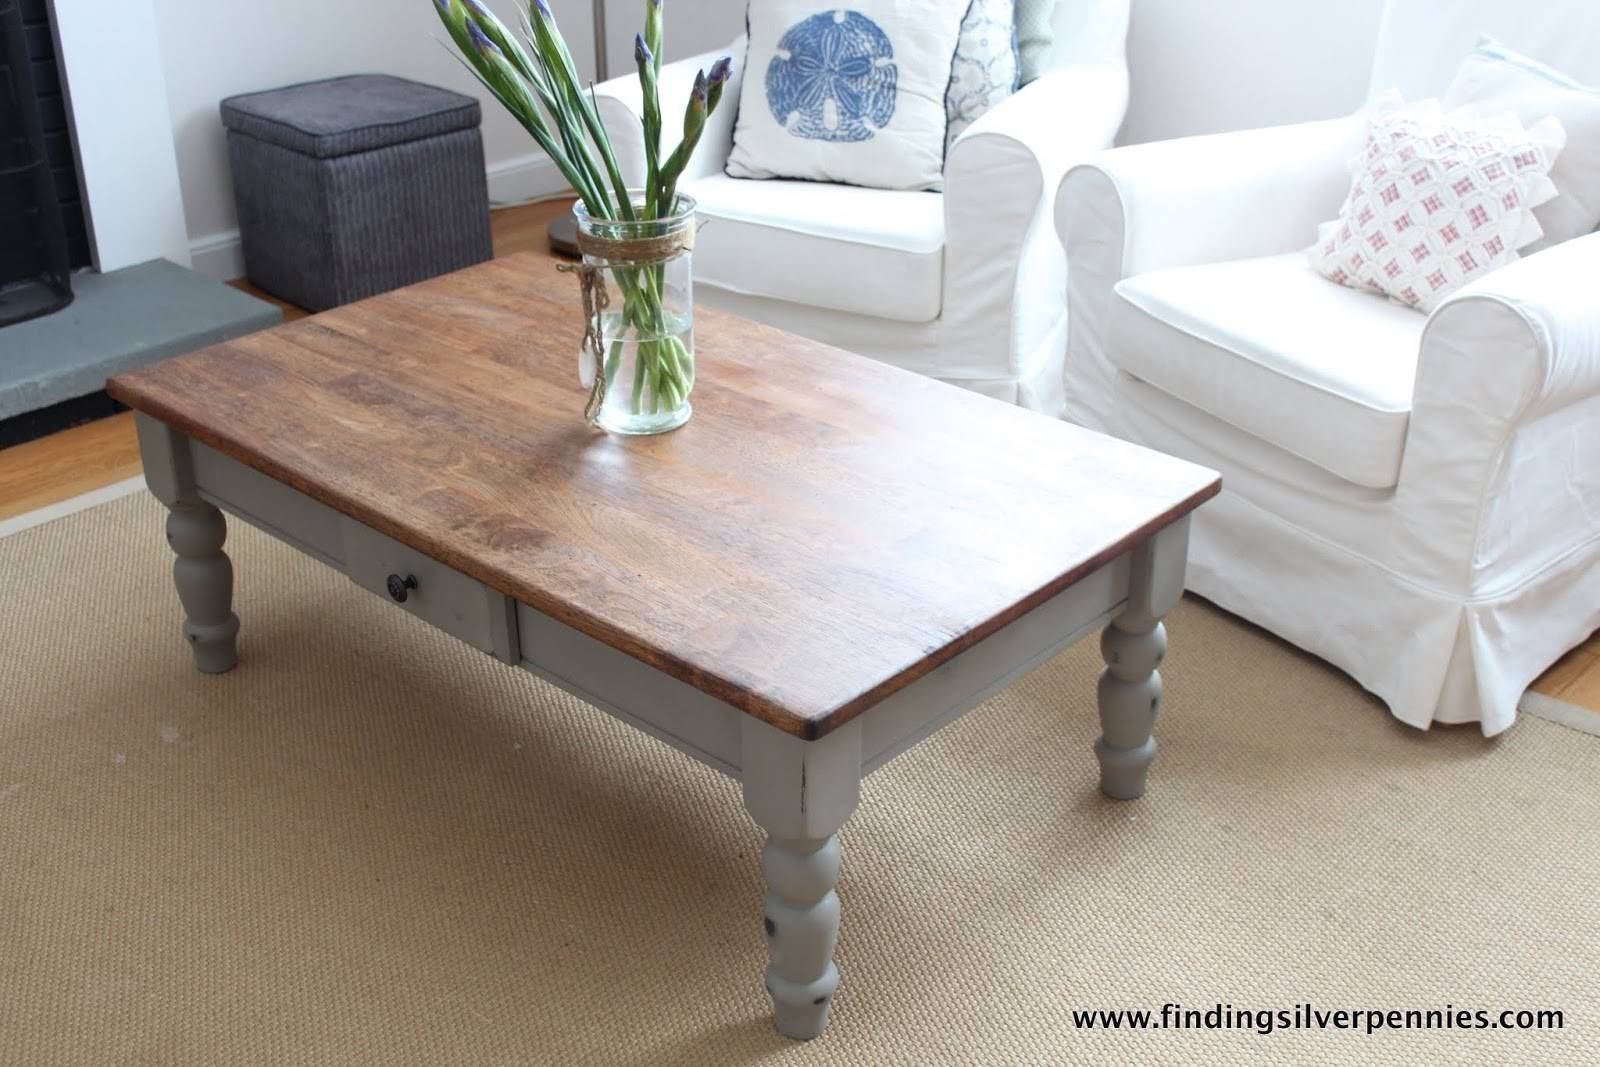 French Linen Coffee Table - Finding Silver Pennies regarding White French Coffee Tables (Image 18 of 30)